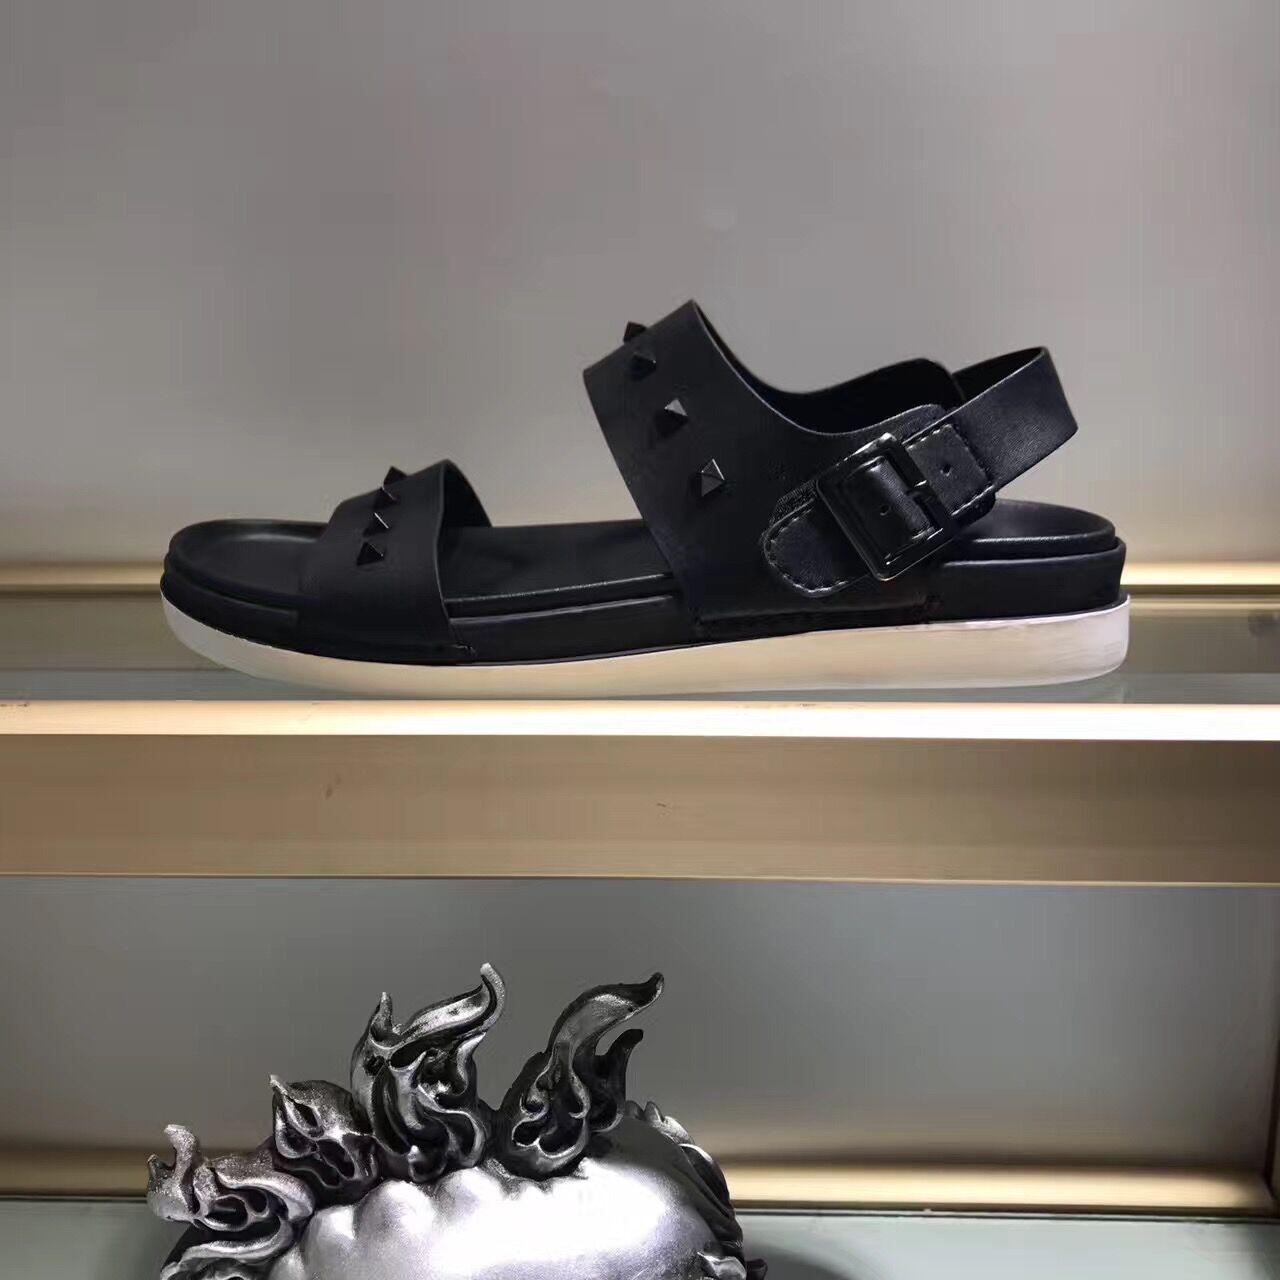 Black jesus sandals - There Are Many Models Of Jesus Sandals For You To Choose Classical Comfortable Leather Black Wedges For